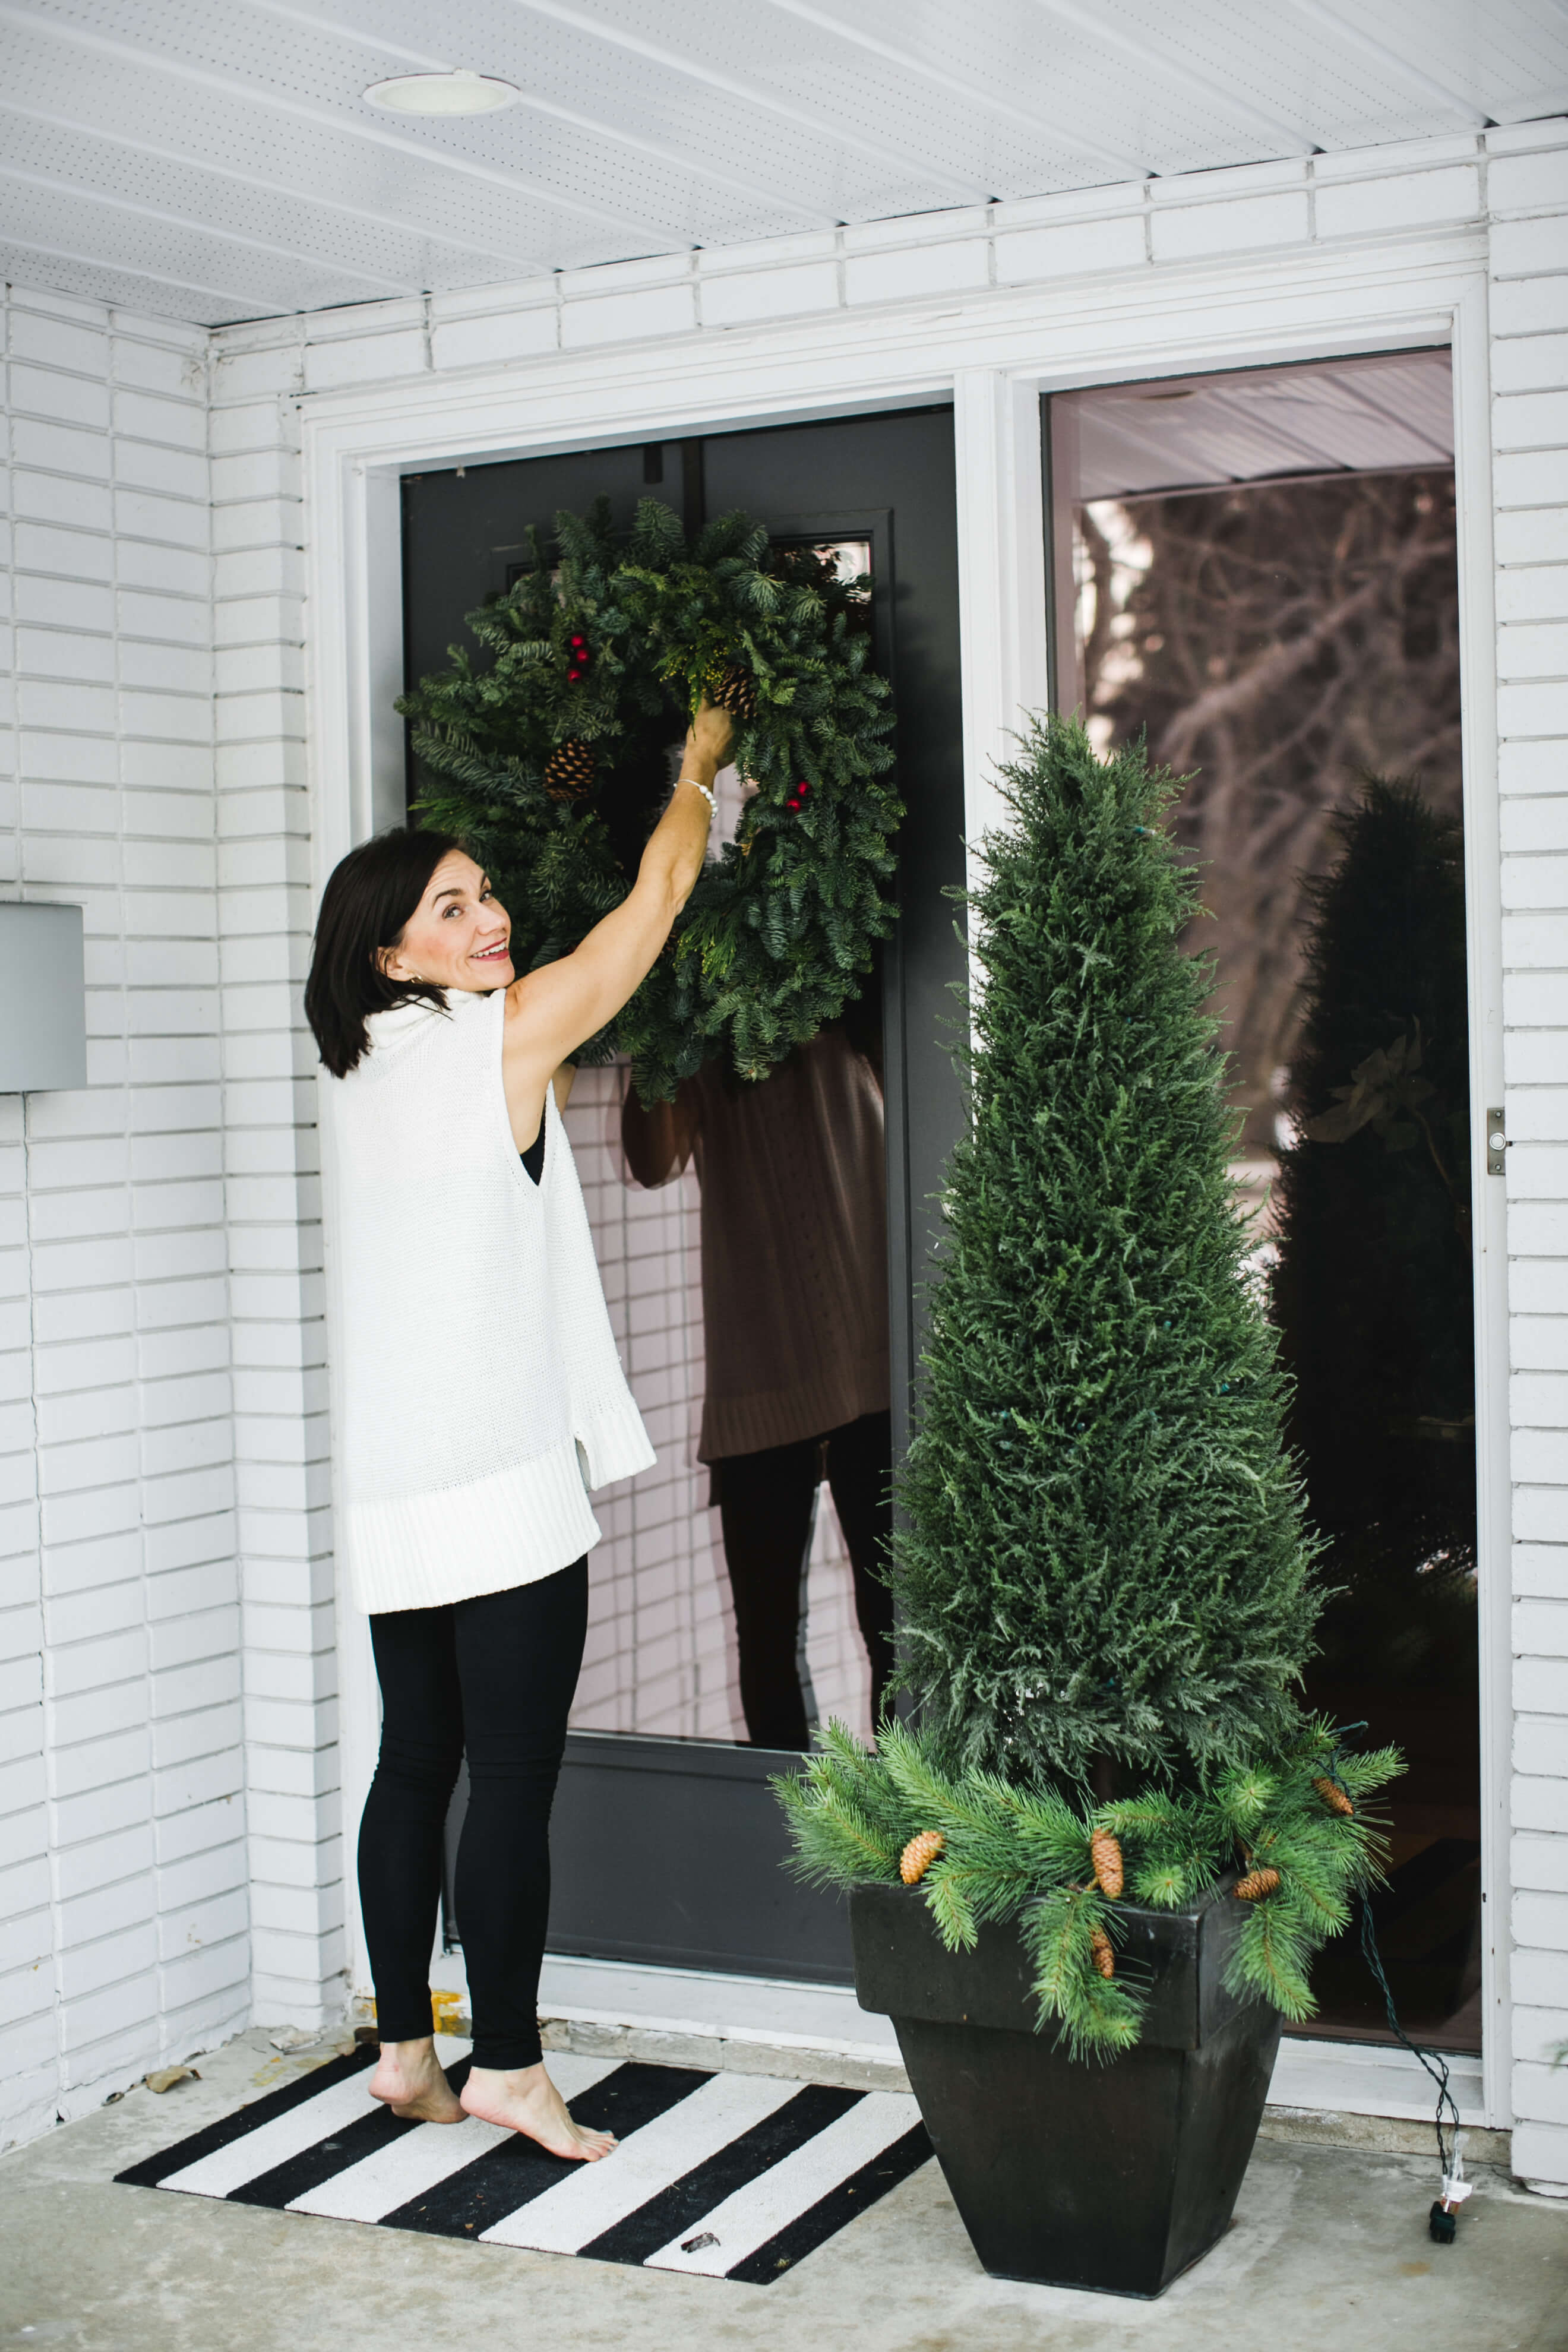 Preparing for the holiday season - outdoors